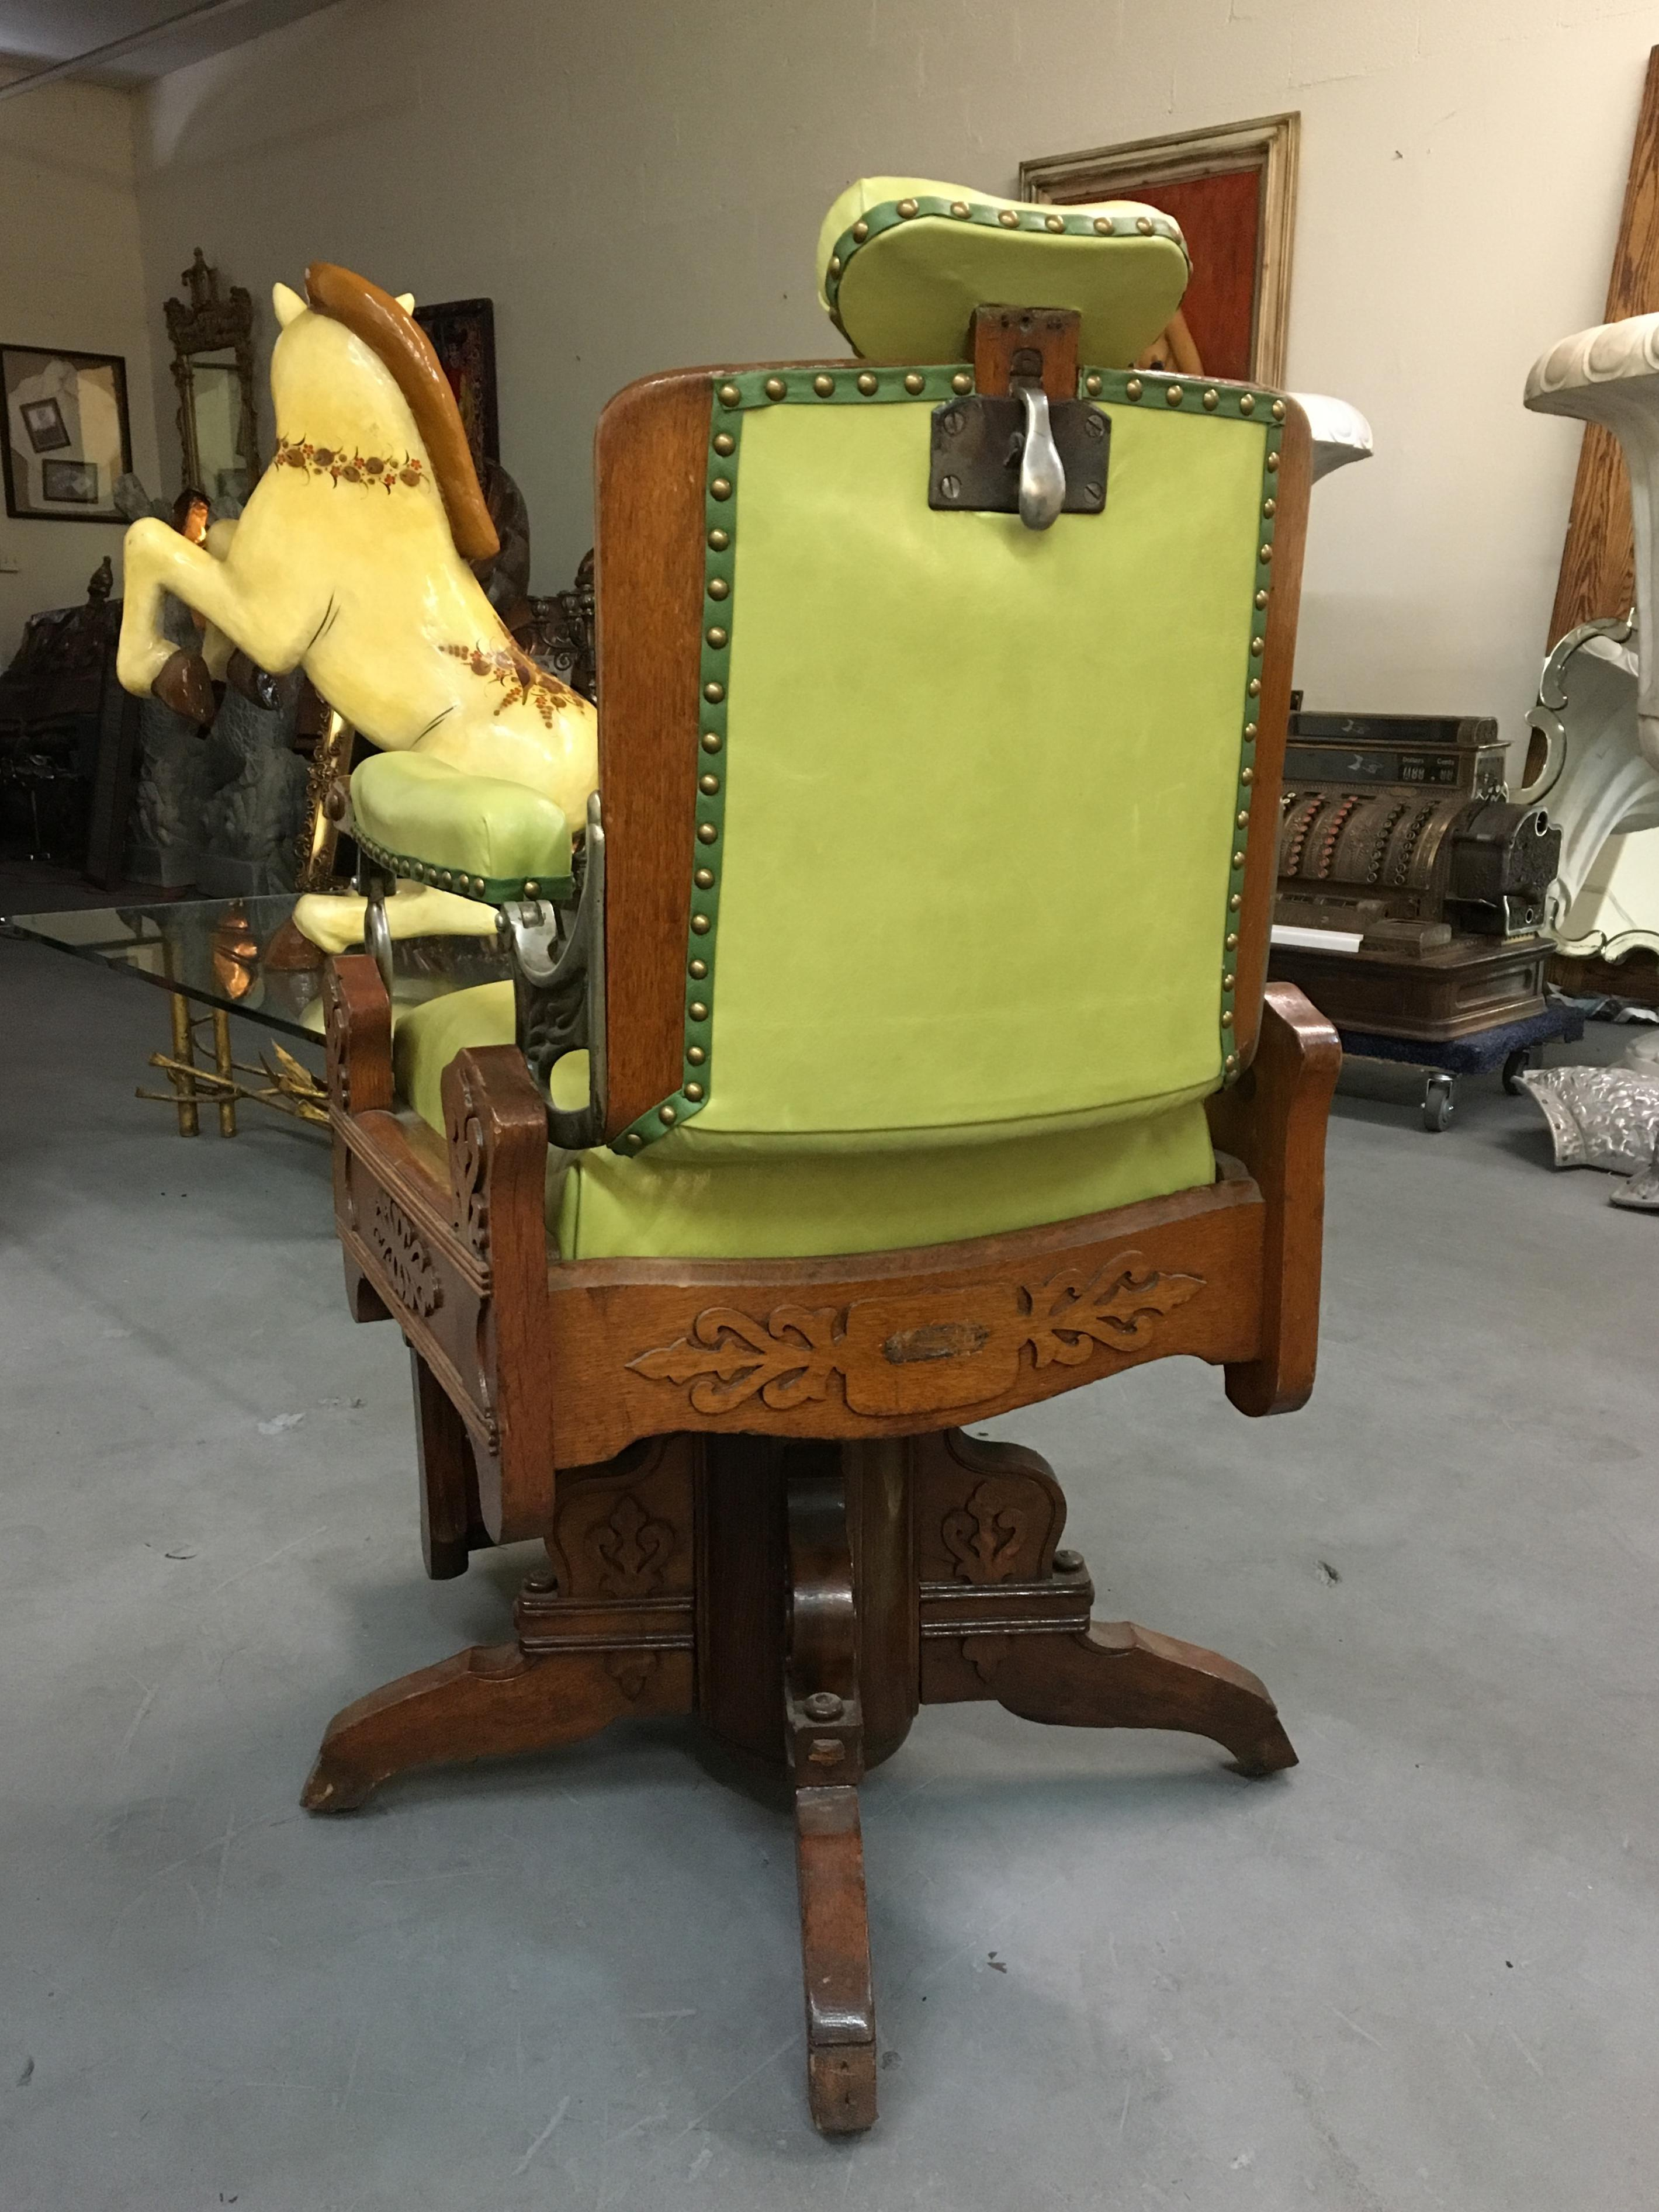 Animal Skin Antique Koken Oak u0026 Green Leather Barber Chair For Sale - Image 7 of  sc 1 st  Chairish & Antique Koken Oak u0026 Green Leather Barber Chair | Chairish